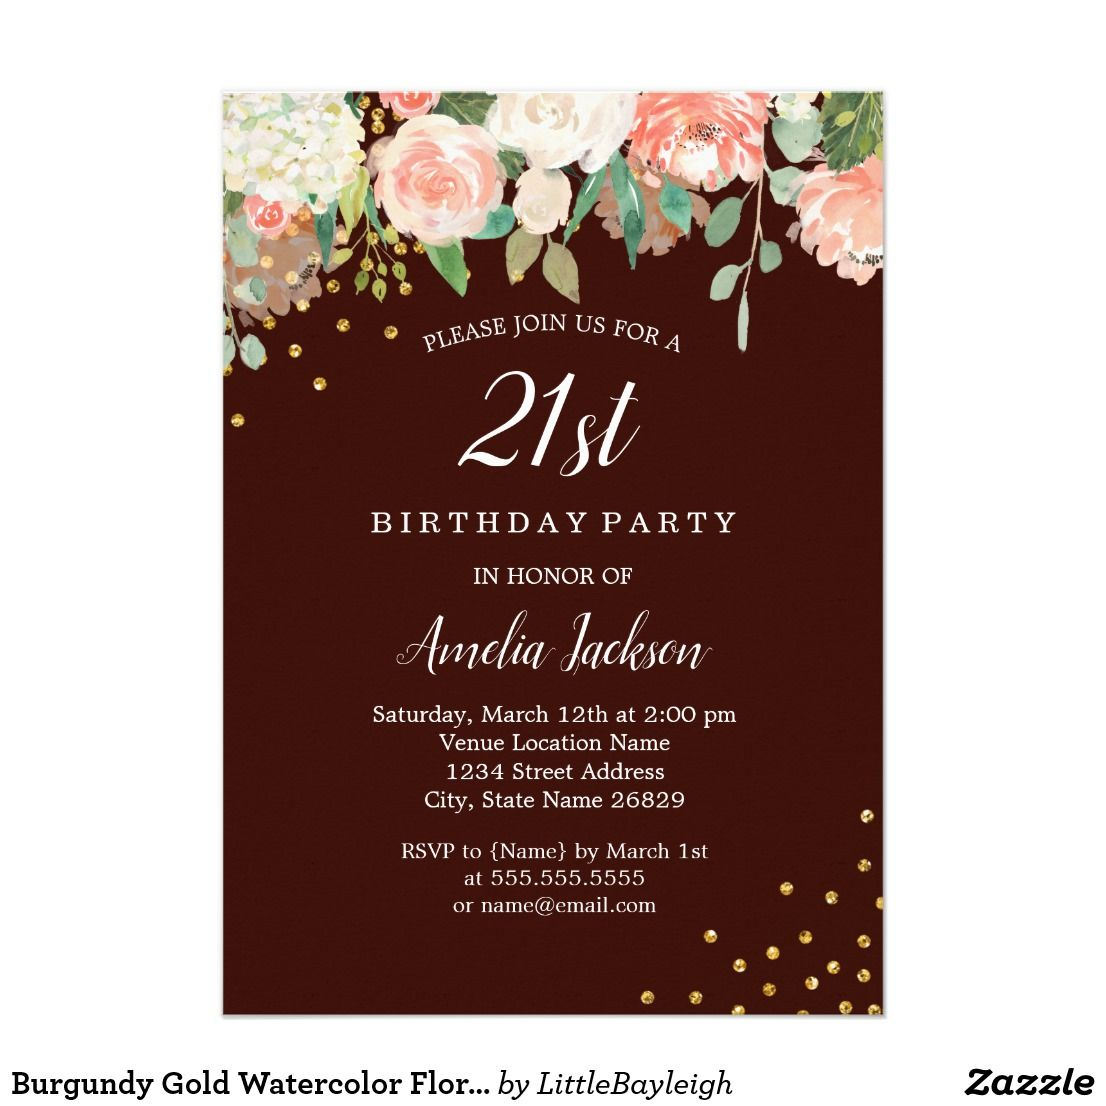 Burgundy Gold Watercolor Floral 21st Birthday Invitation 21st